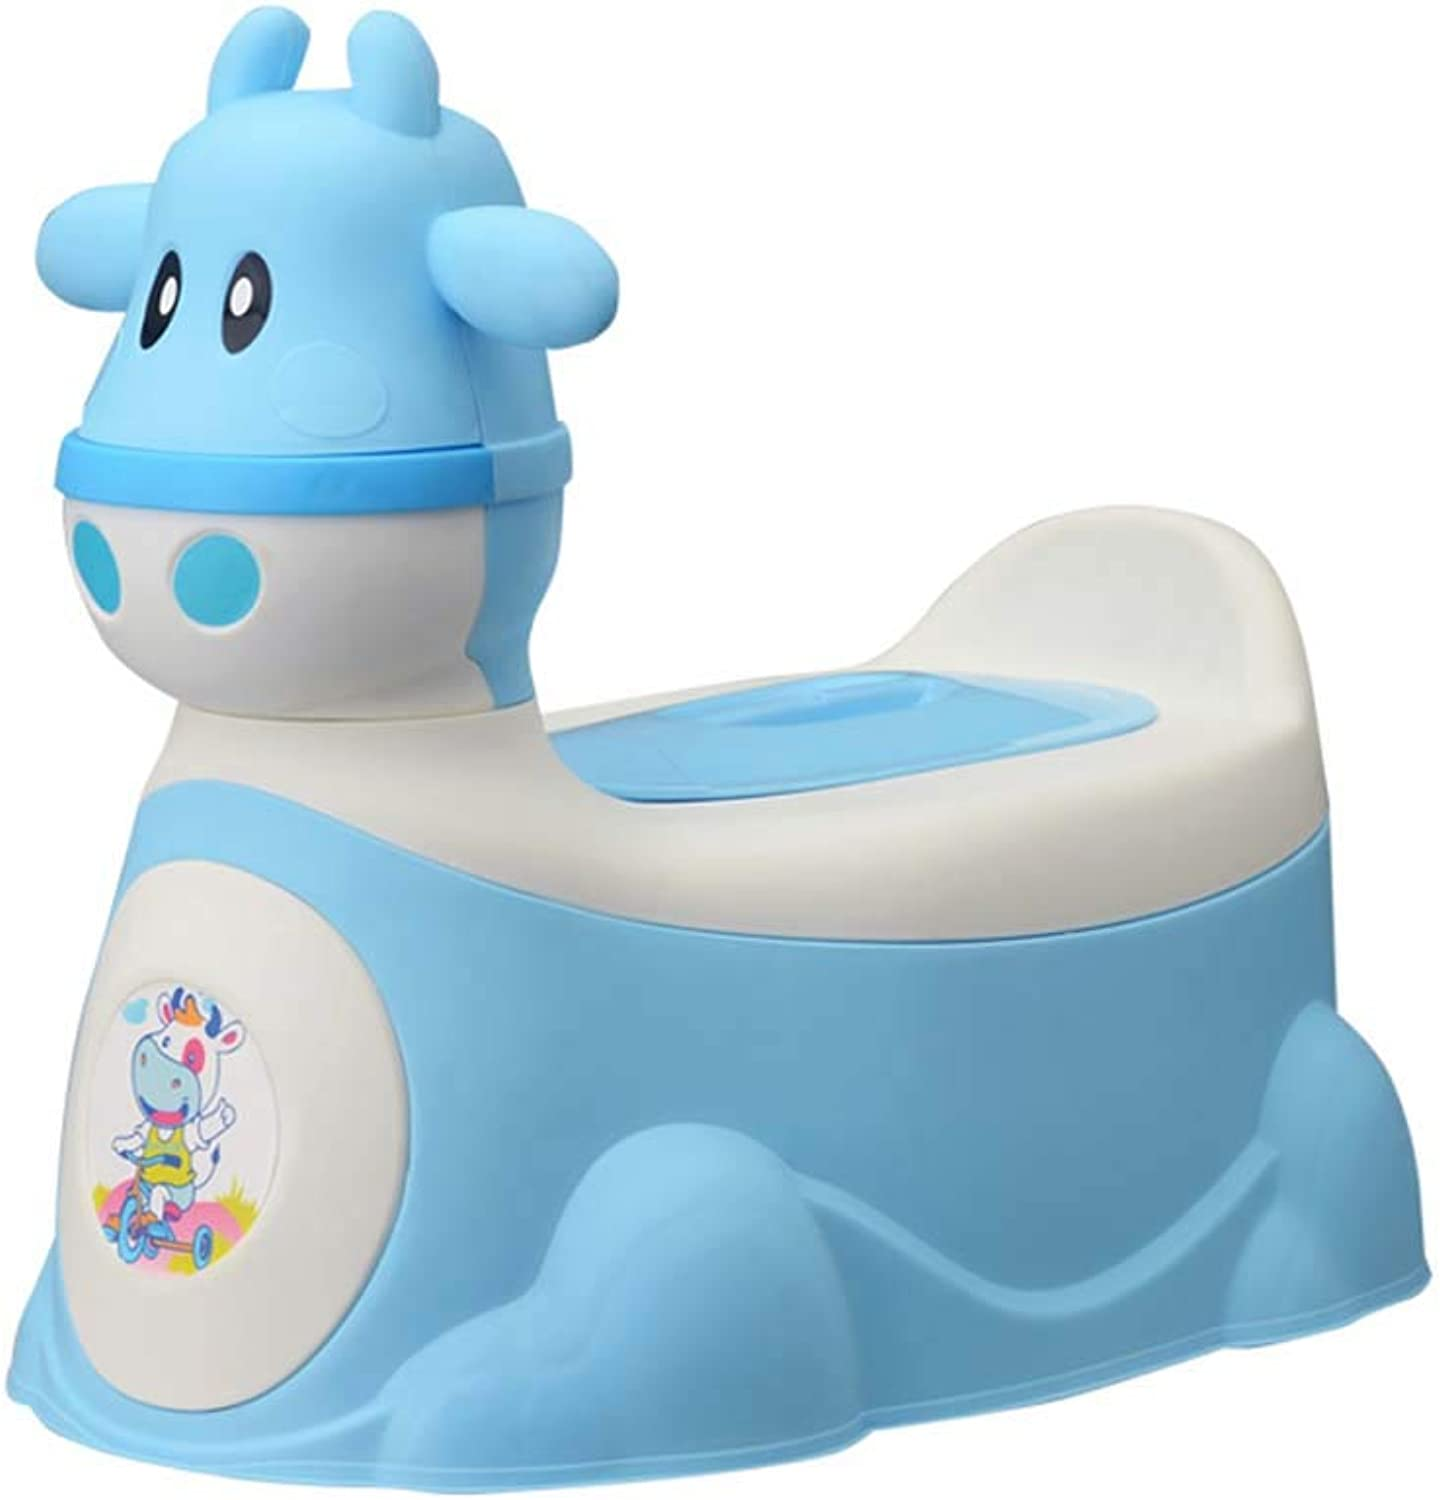 Baby Potty Chair - Removable, Easy Clean,High Back Rest, Comfortable Ergonomic Design,Non-Slip Feet,Potty Training Your Boy Or Girl – for Happy Toddler Potty Training,bluee